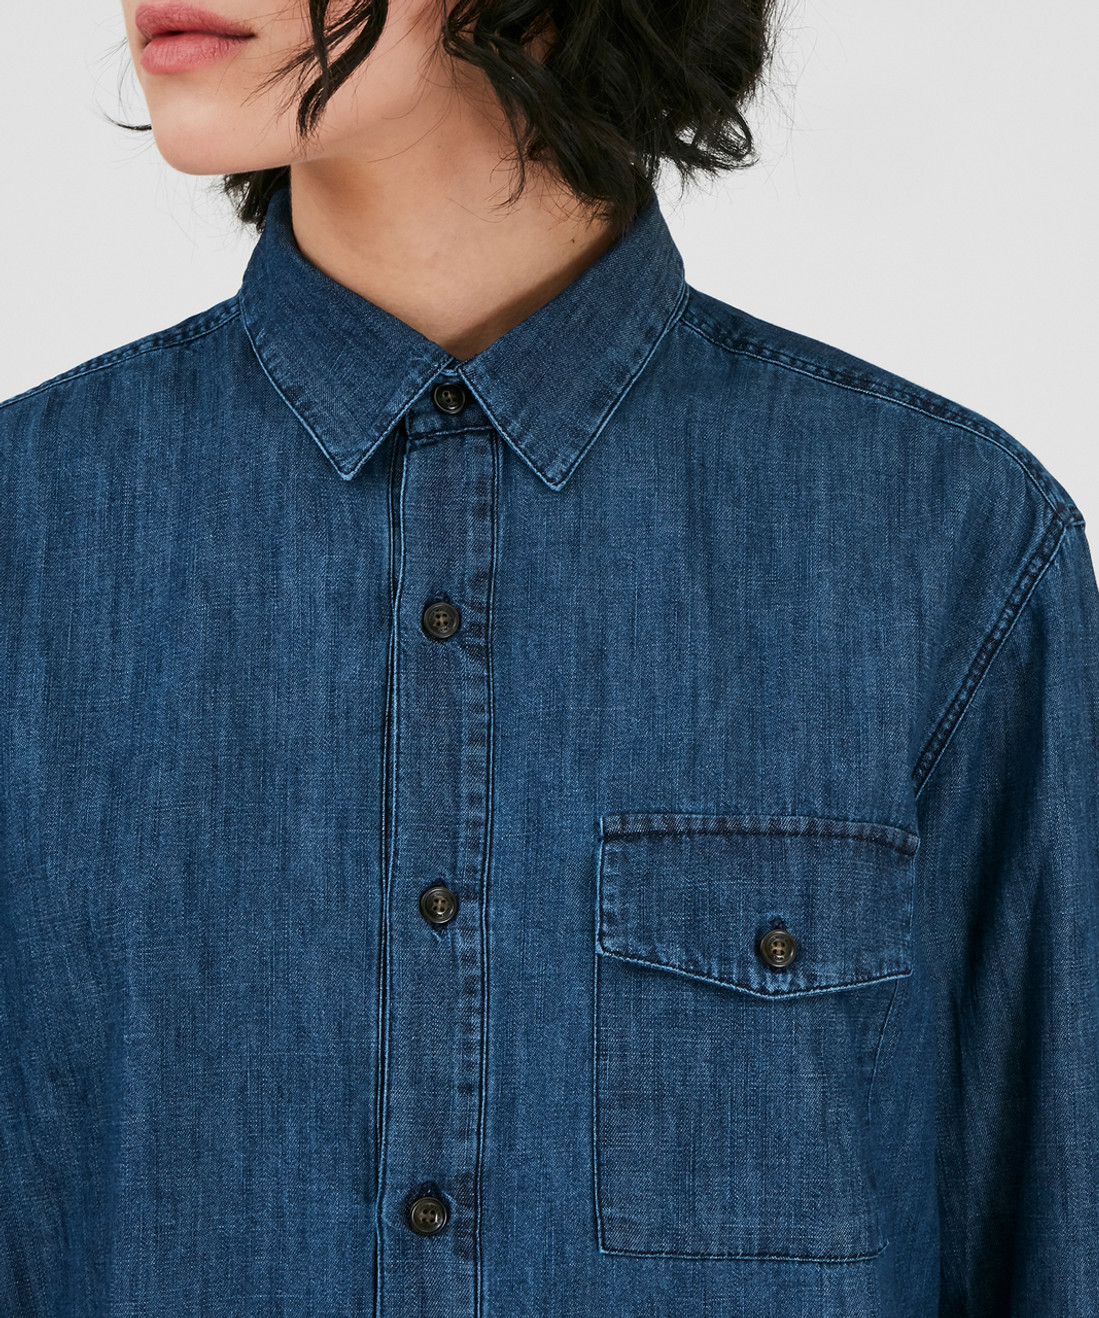 Women's Denim Chambray Shirt - 100% Cotton - John Rich & Bros.